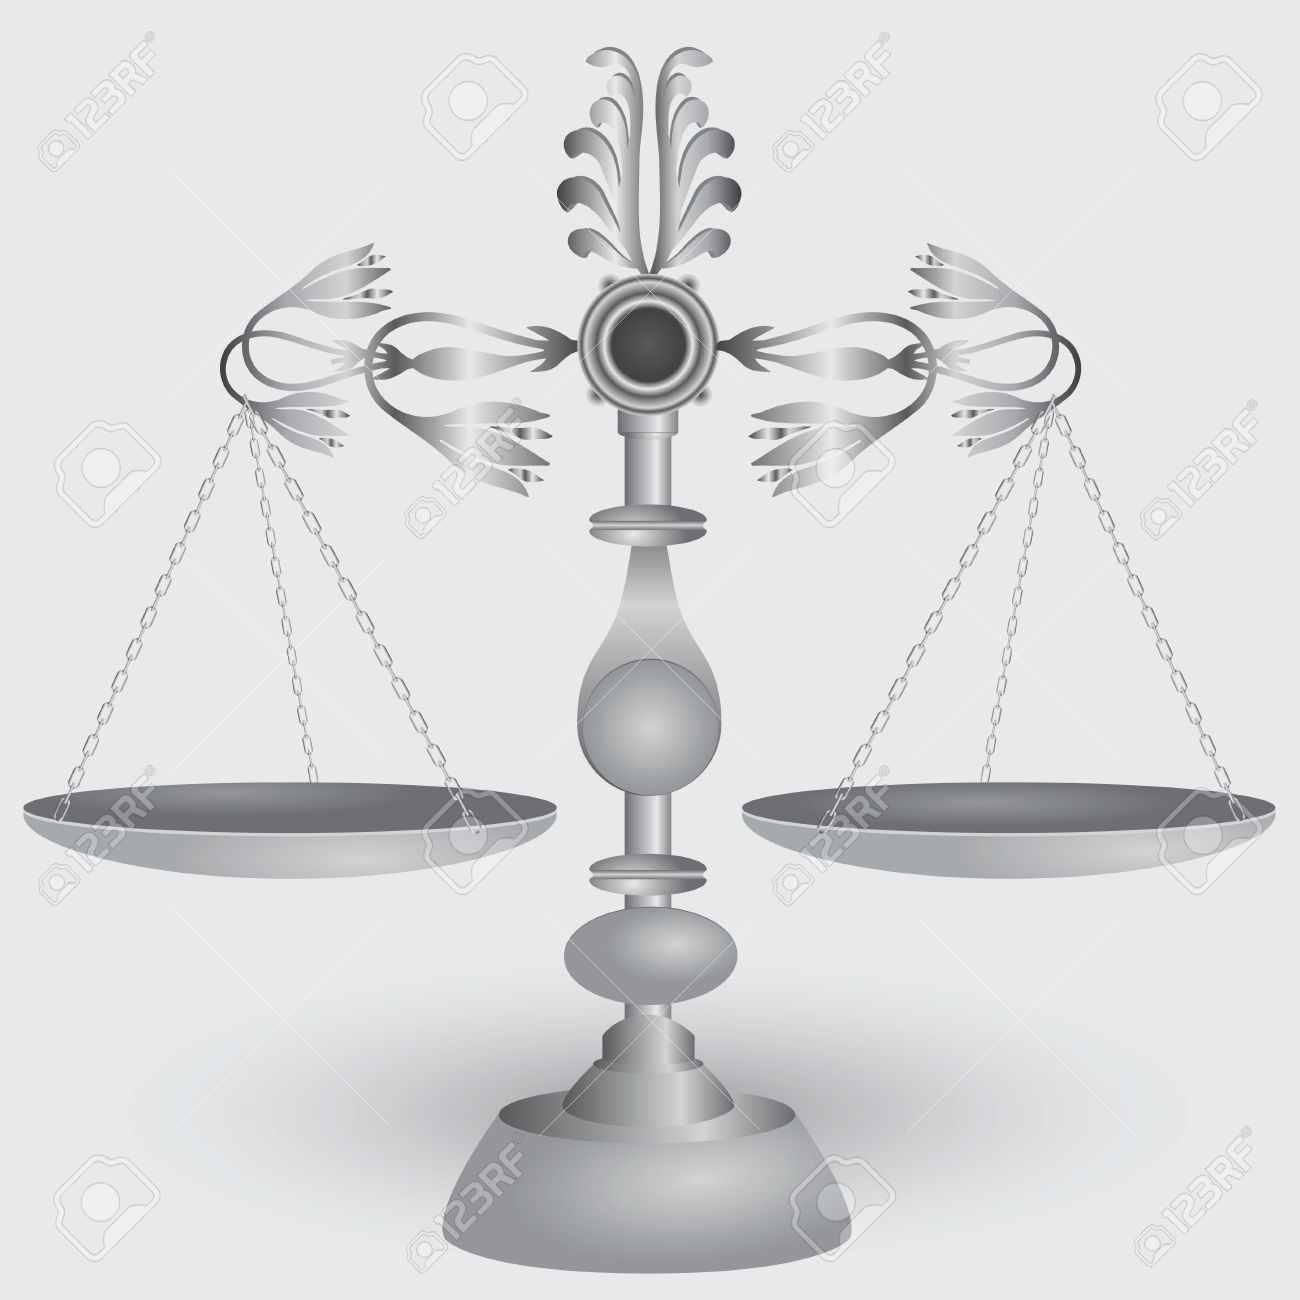 Vintage apothecary scales, symbol of jurisprudence. Stock Vector - 15472799